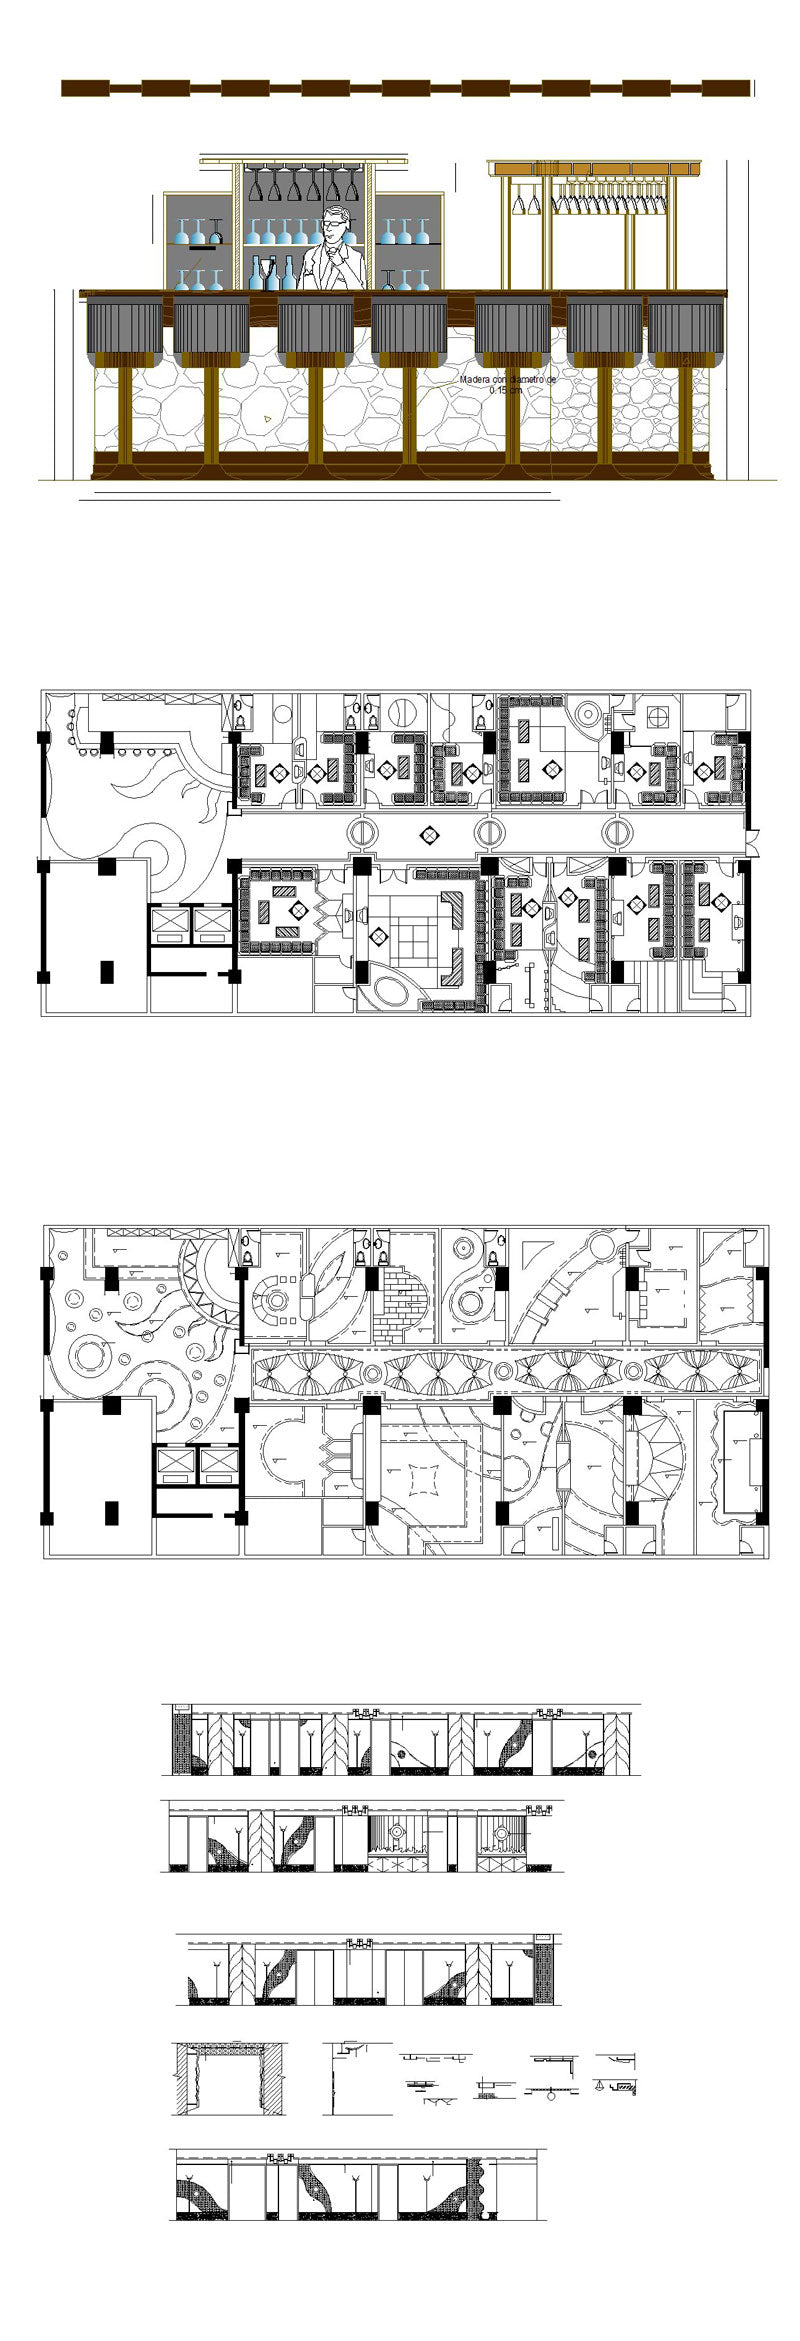 ★【Pub,Bar,Restaurant CAD Design Drawings V.1】@Pub,Bar,Restaurant,Store design-Autocad Blocks,Drawings,CAD Details,Elevation